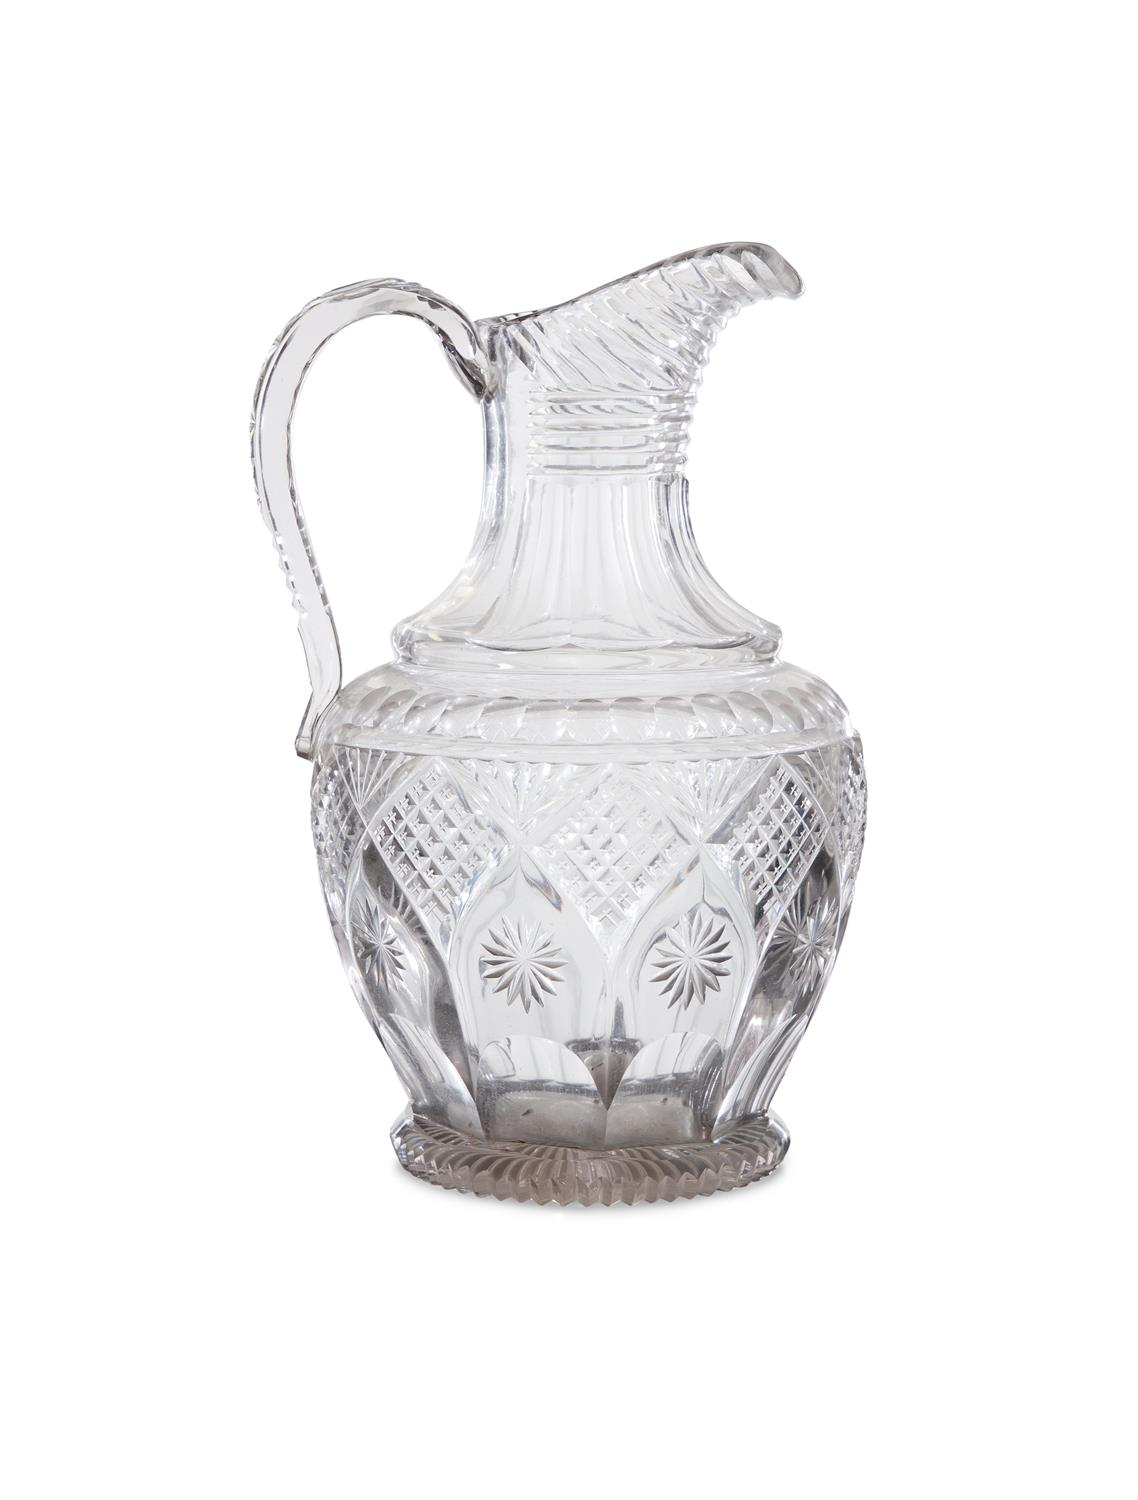 AN IRISH REGENCY CUT GLASS WATER PITCHER WITH STEP-CUT NECK, faceted shoulders, with diamond and